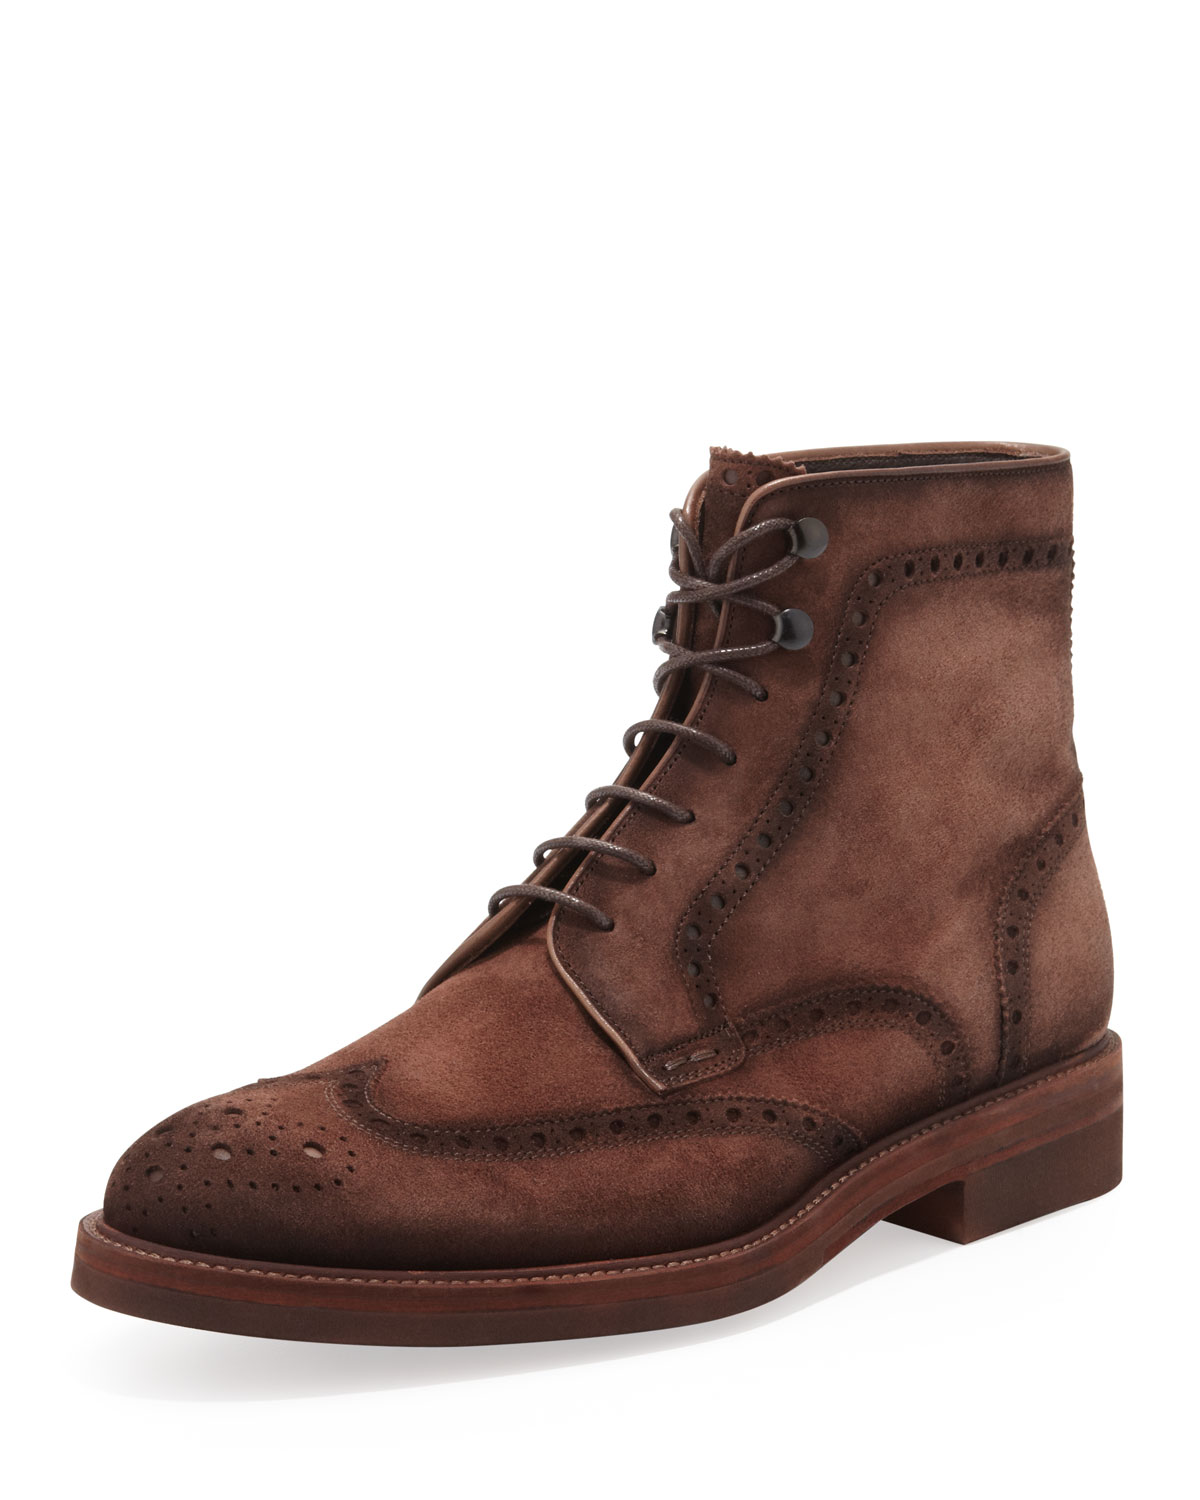 magnanni mens suede laceup wingtip boot in brown for